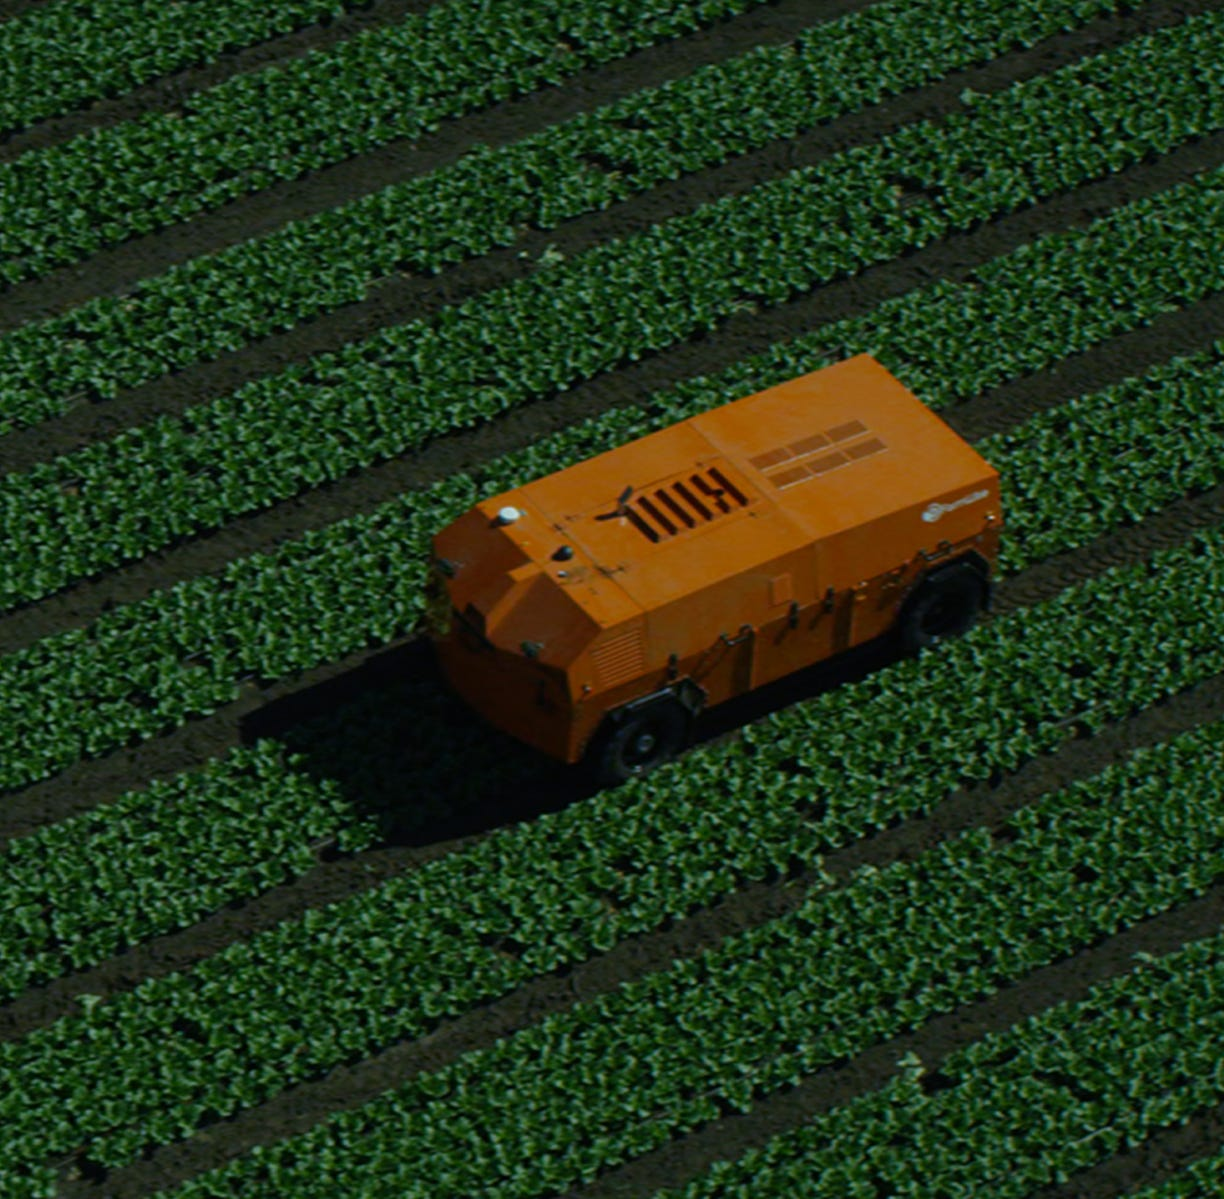 Roush's next power play? Self-driving weeders